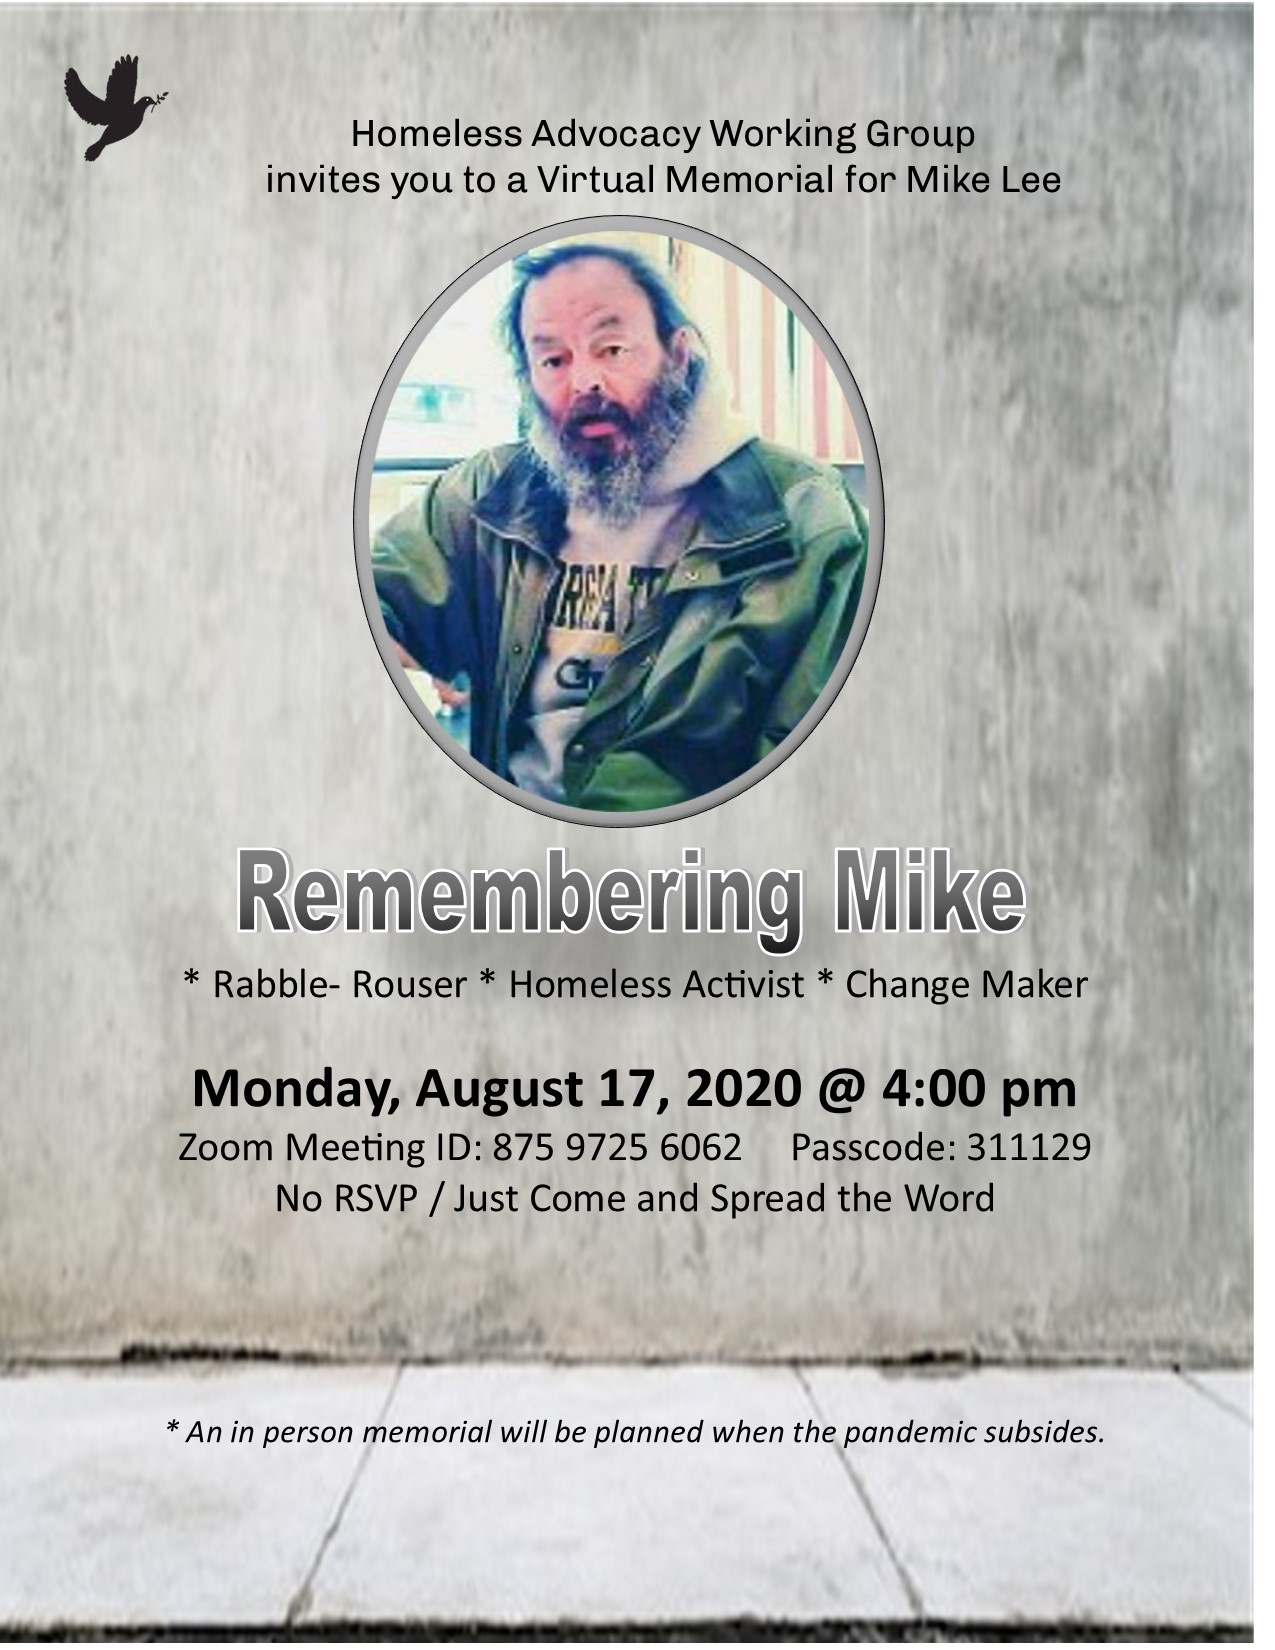 Memorial for Mike Lee @ ONLINE, VIA 'ZOOM'